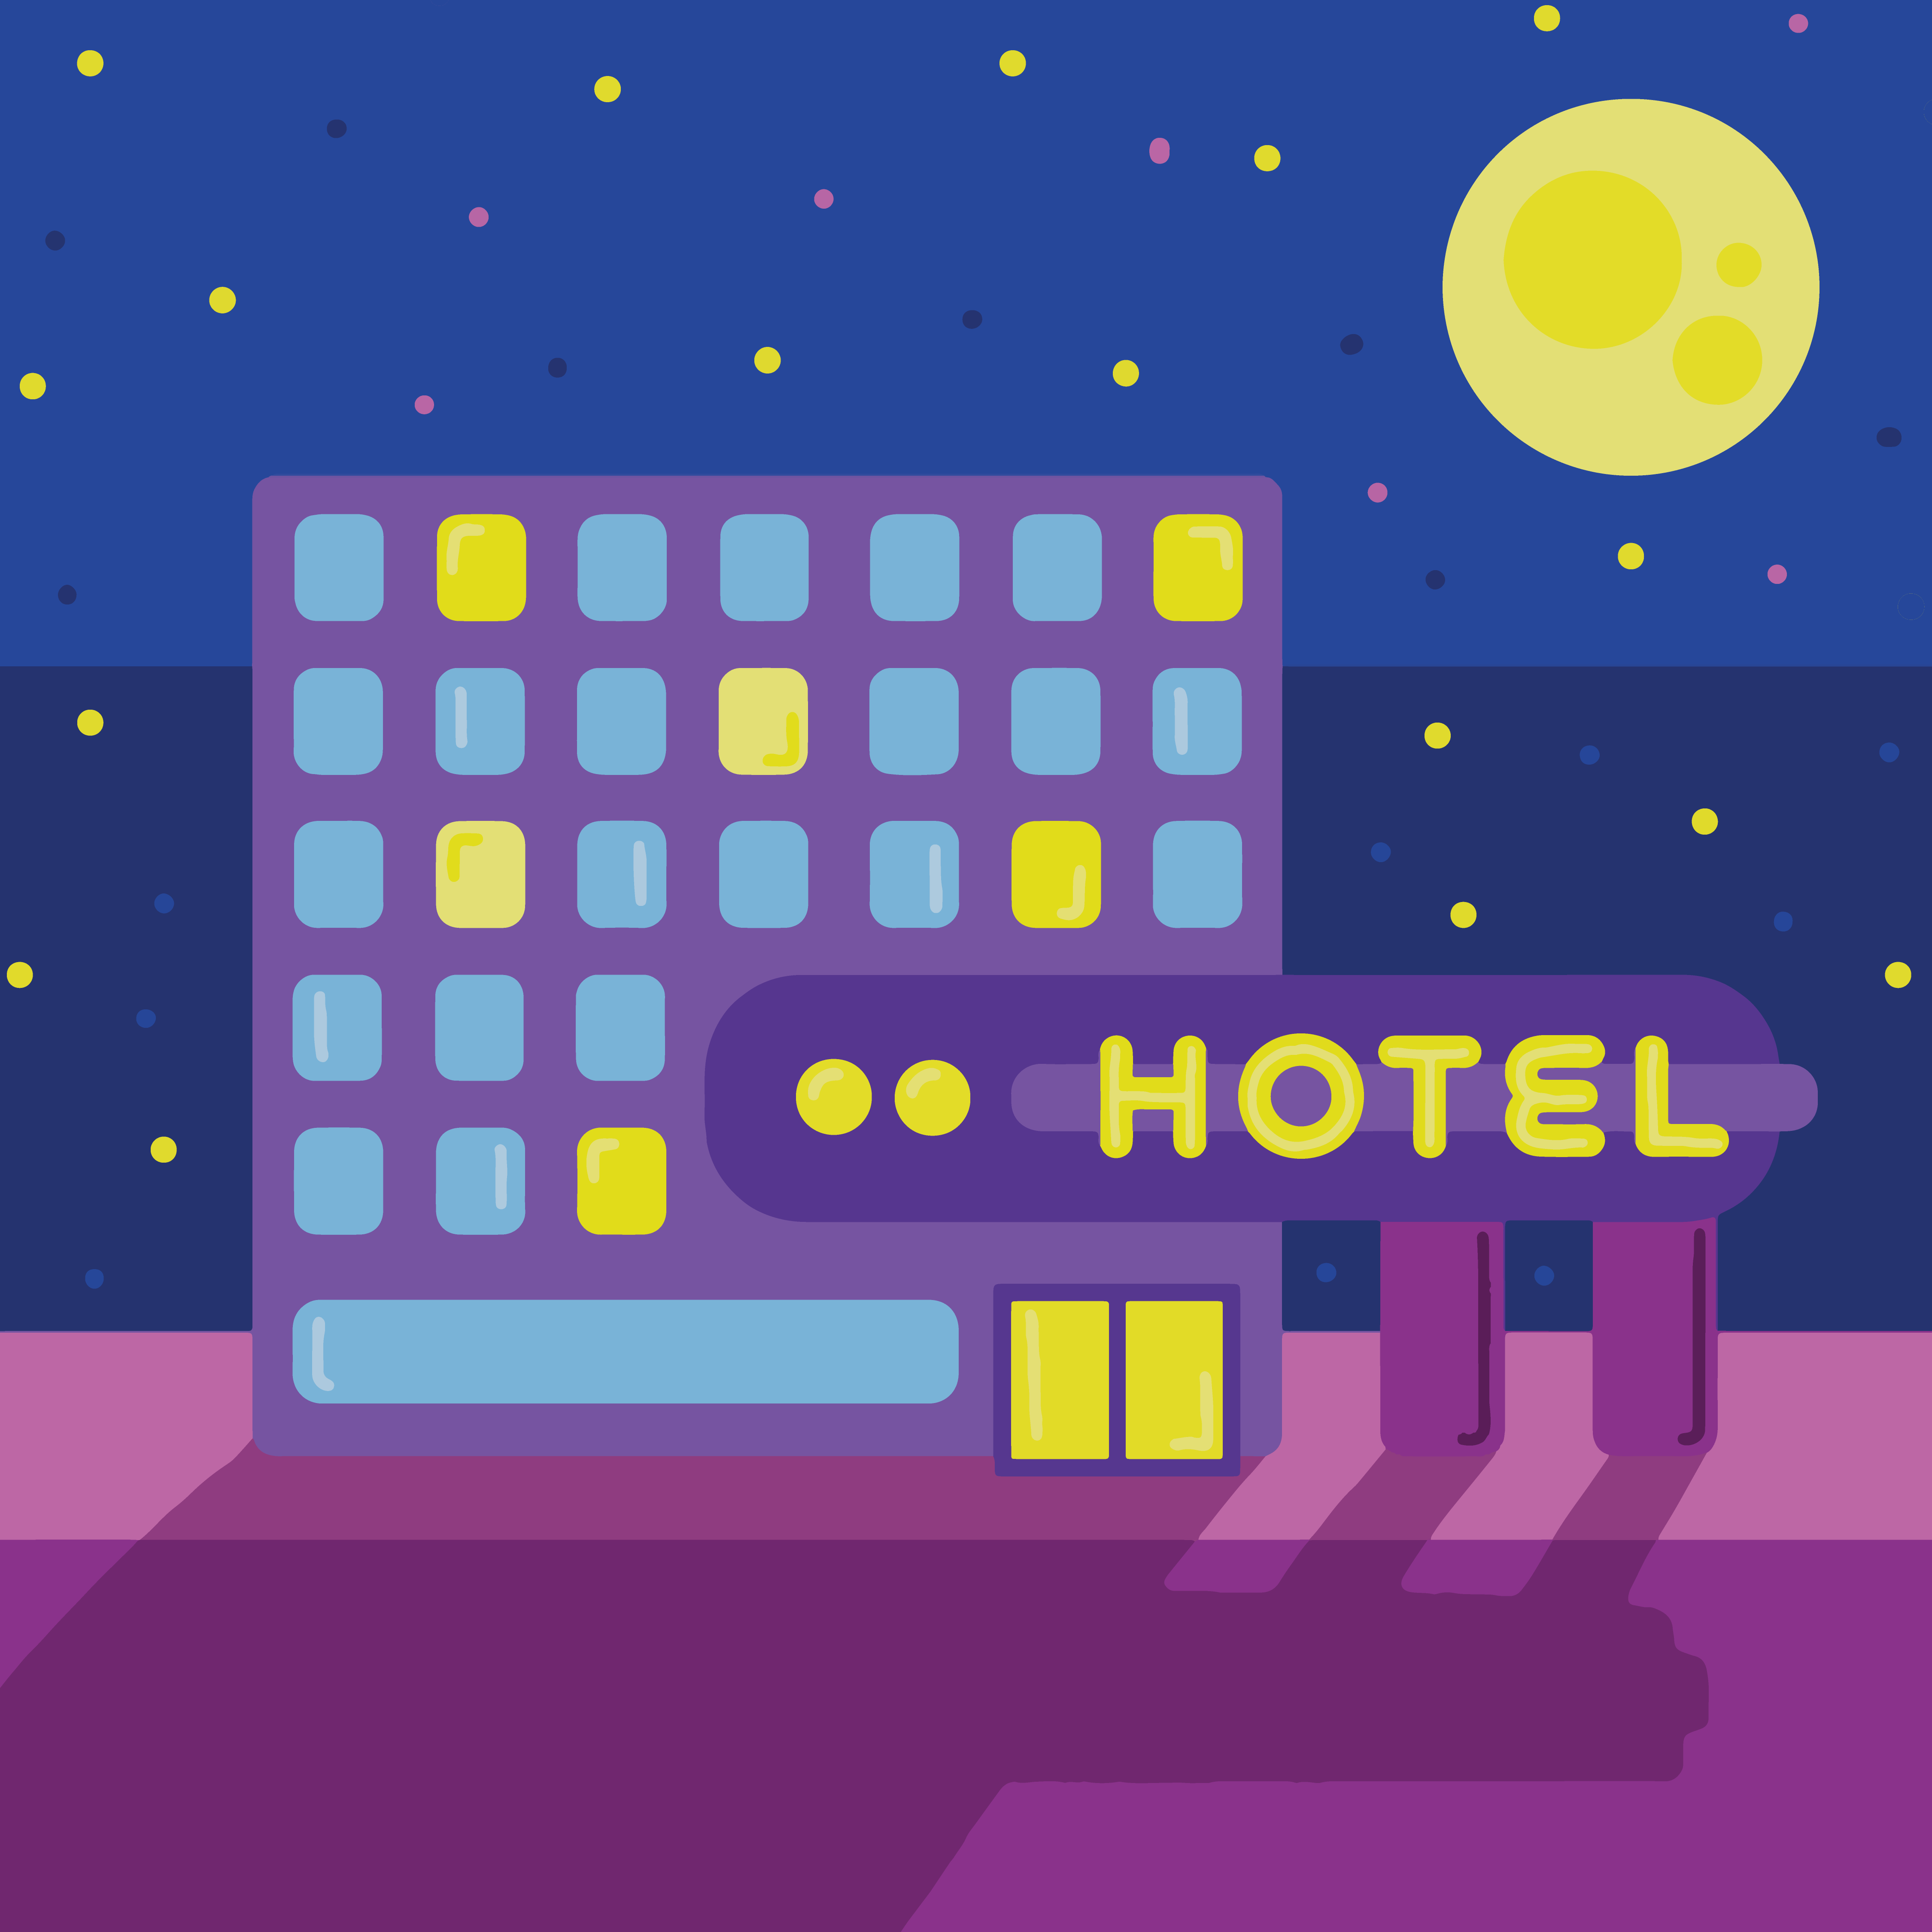 hotel at night by Mina Tocalini for 360 Magazine